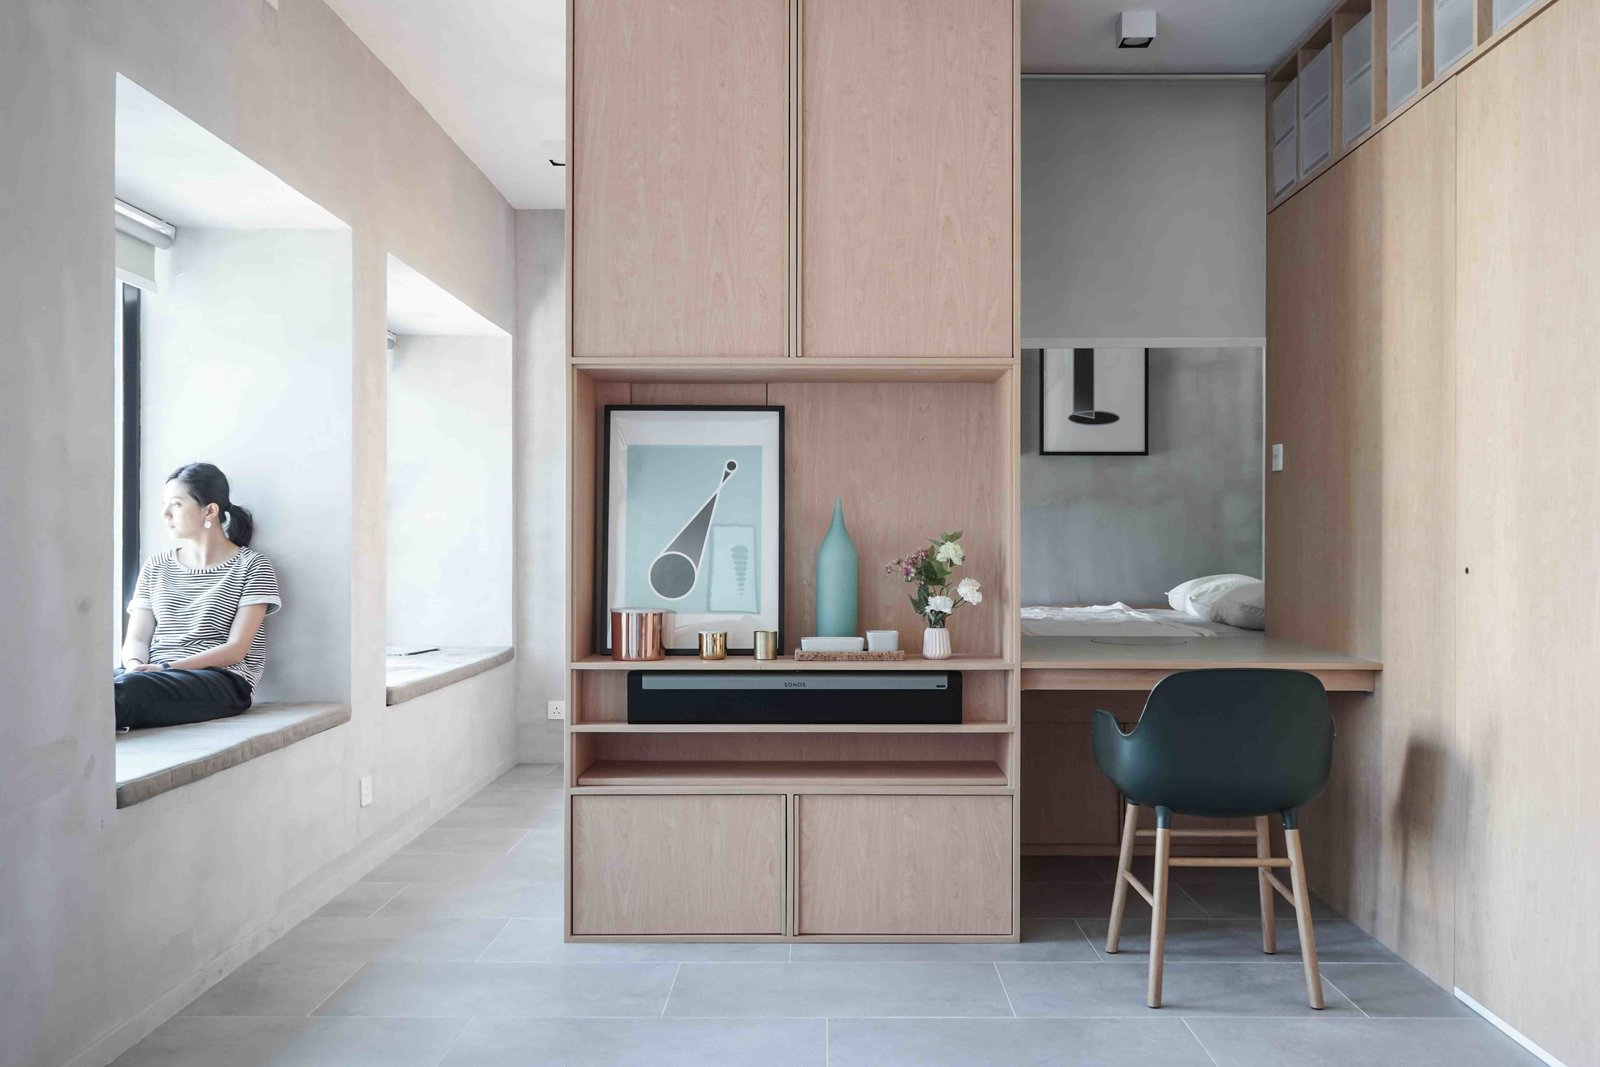 Office, Study Room Type, Chair, Desk, and Cement Tile Floor Feeling cooped up and stressed out? Here are some essential tips from designers and builders of small spaces.   Photo 4 of 11 in 10 Small Apartments by a Hong Kong Design Studio That Are Less Than 1,000 Square Feet